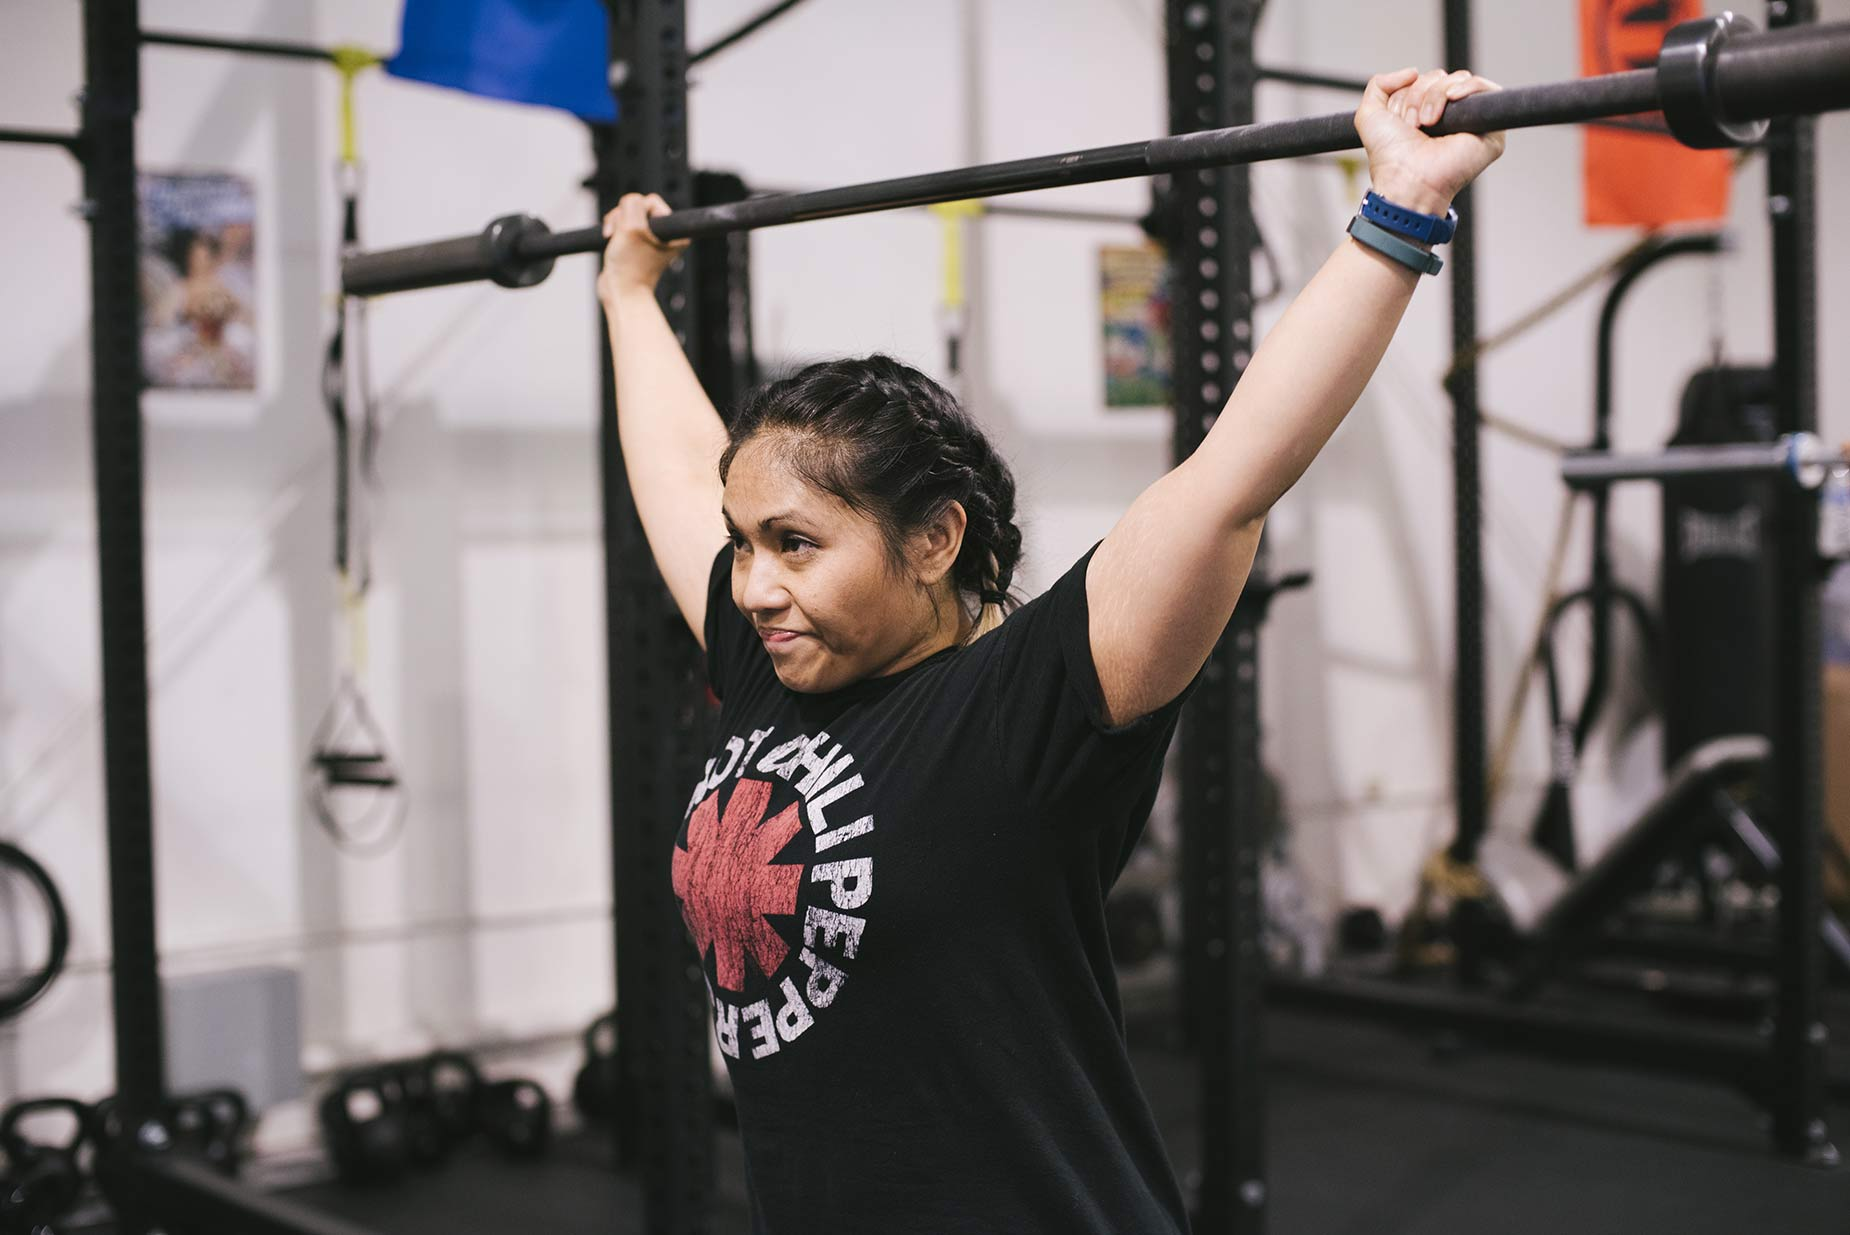 Why Women Cannot Get Bulky While Lifting Weights